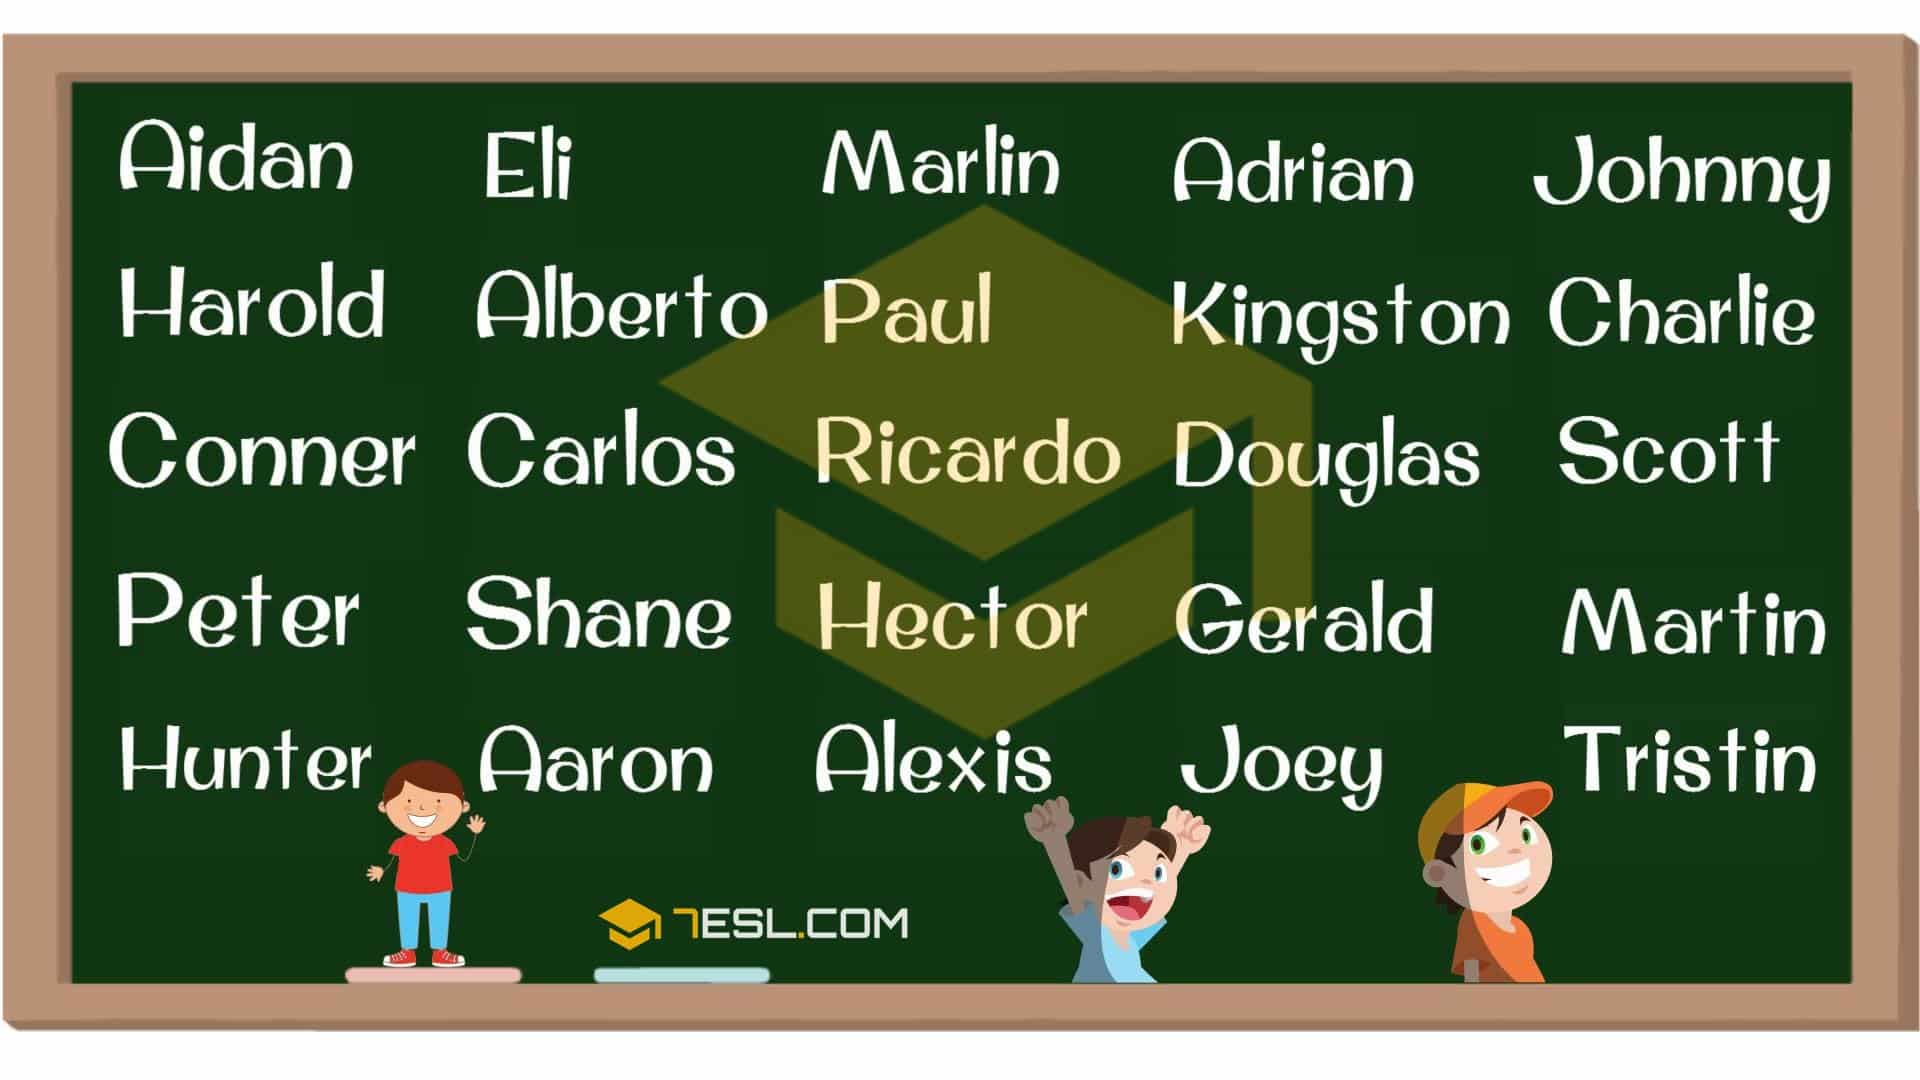 Male names in English